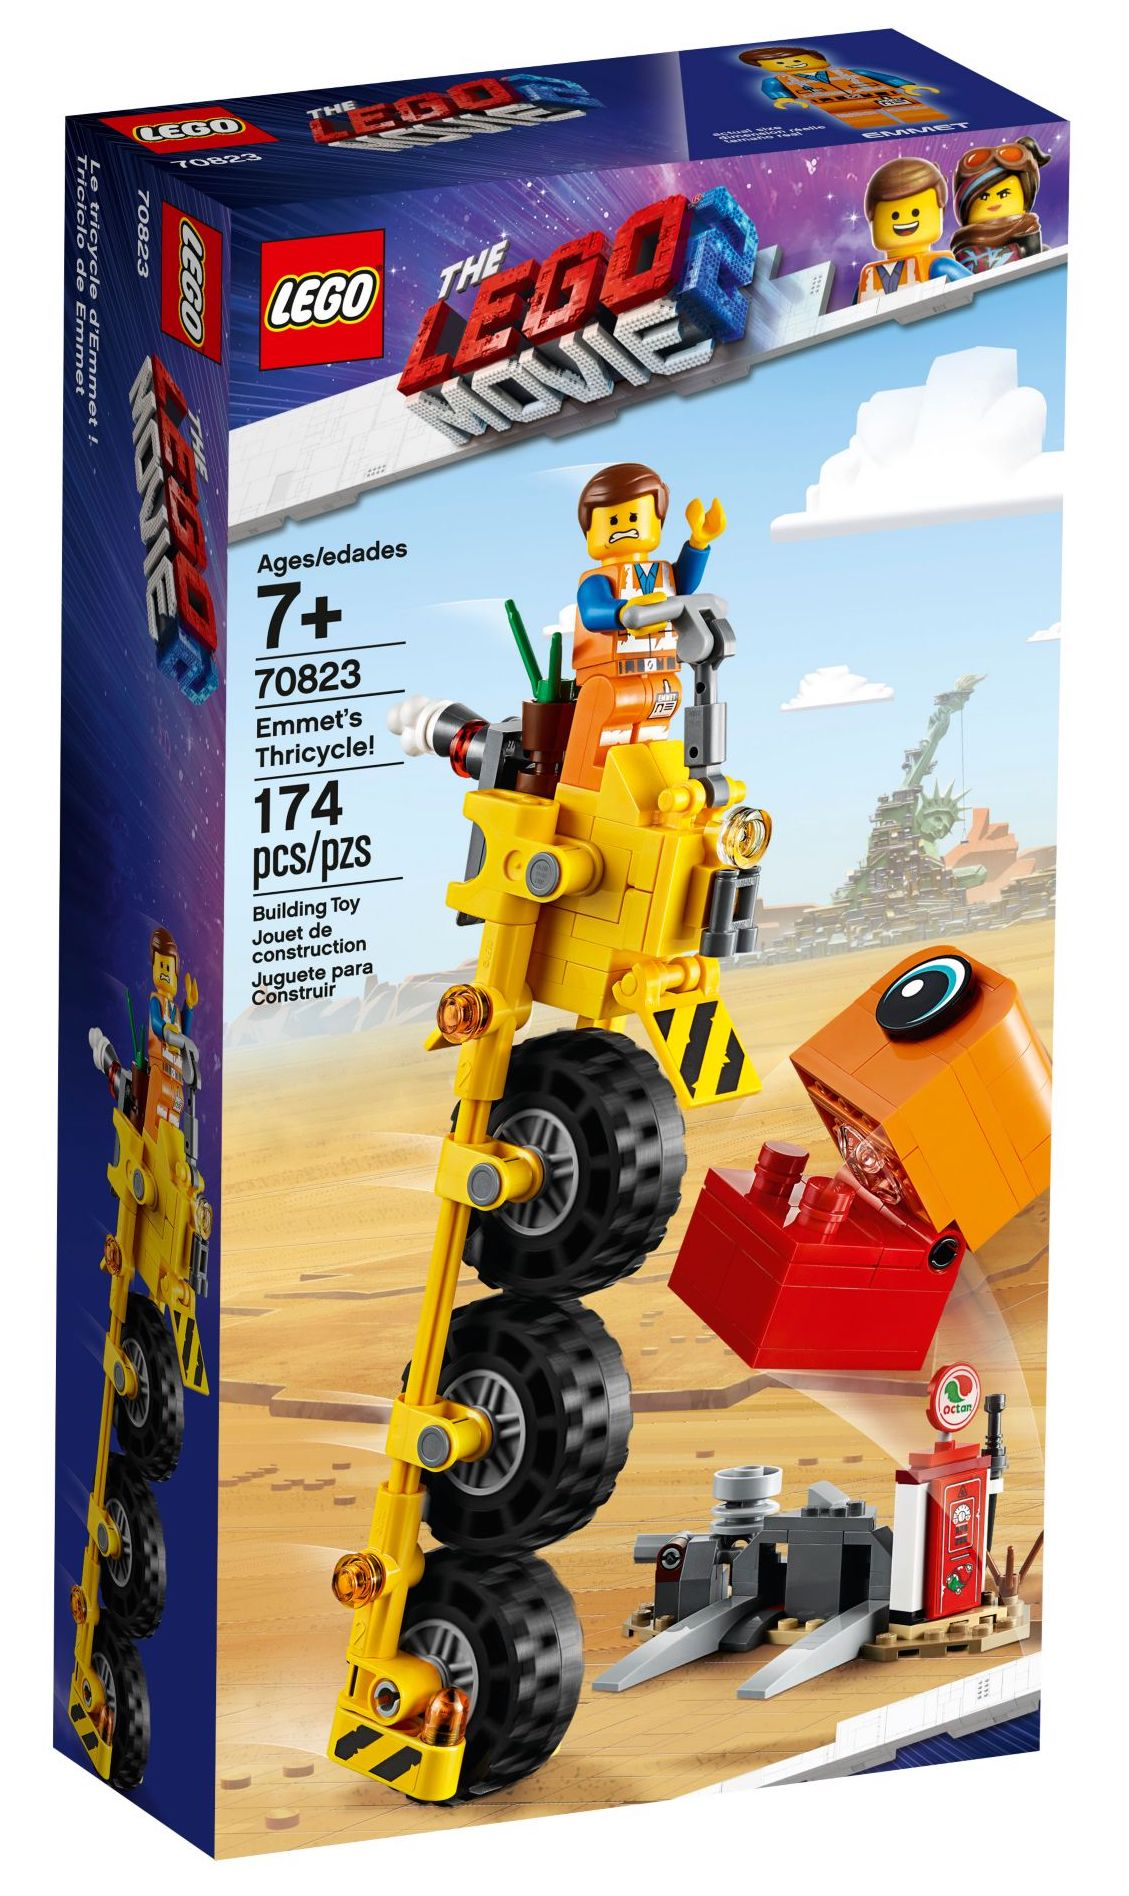 LEGO 70823 Emmet's Thricycle